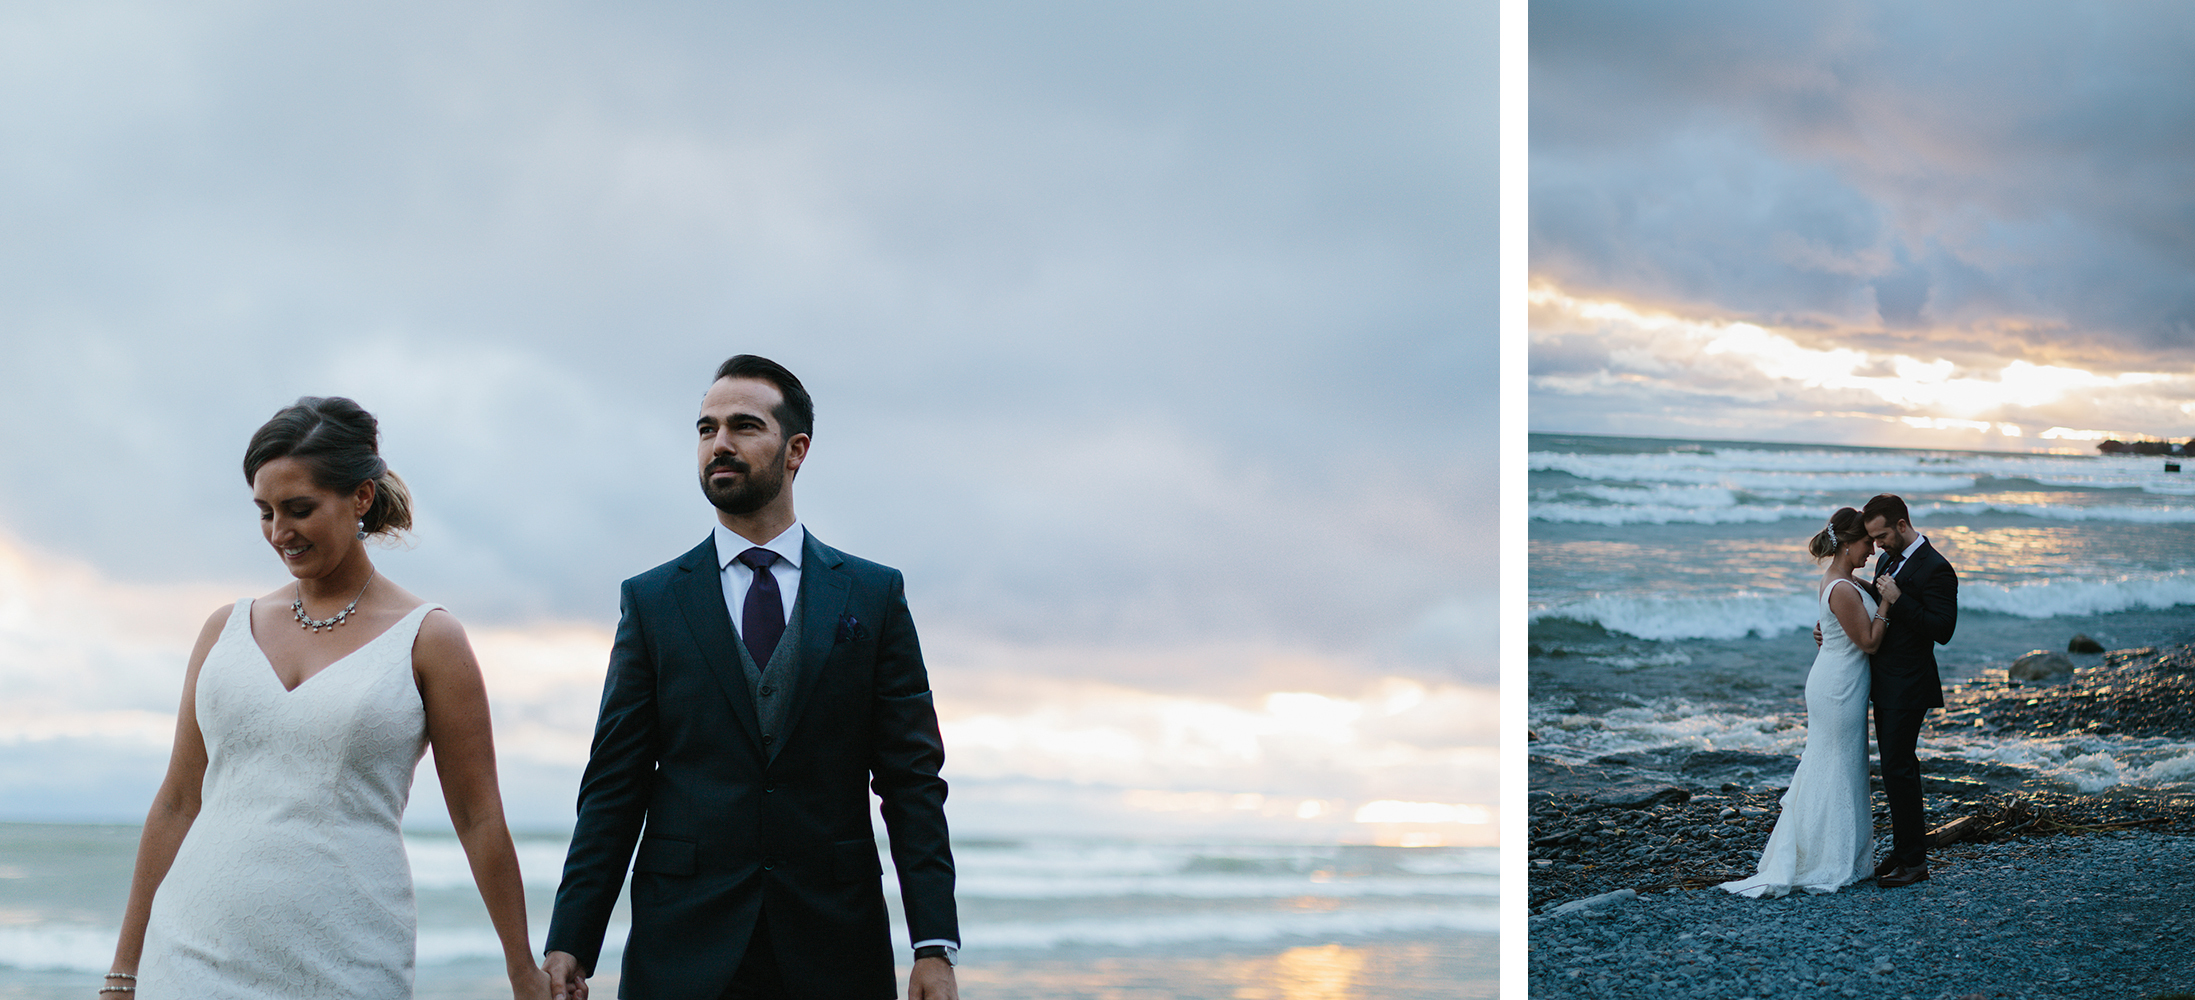 13-Prince-Edward-County-Wedding-Photographer-Drake-Devonshire-Elopement-Ryanne-Hollies-Photography-junebug-weddings-best-of-the-best-2018-bride-and-groom-portraits-artistic-intimate-sunset-epic-colourful-golden-hour-moody-clouds.jpg